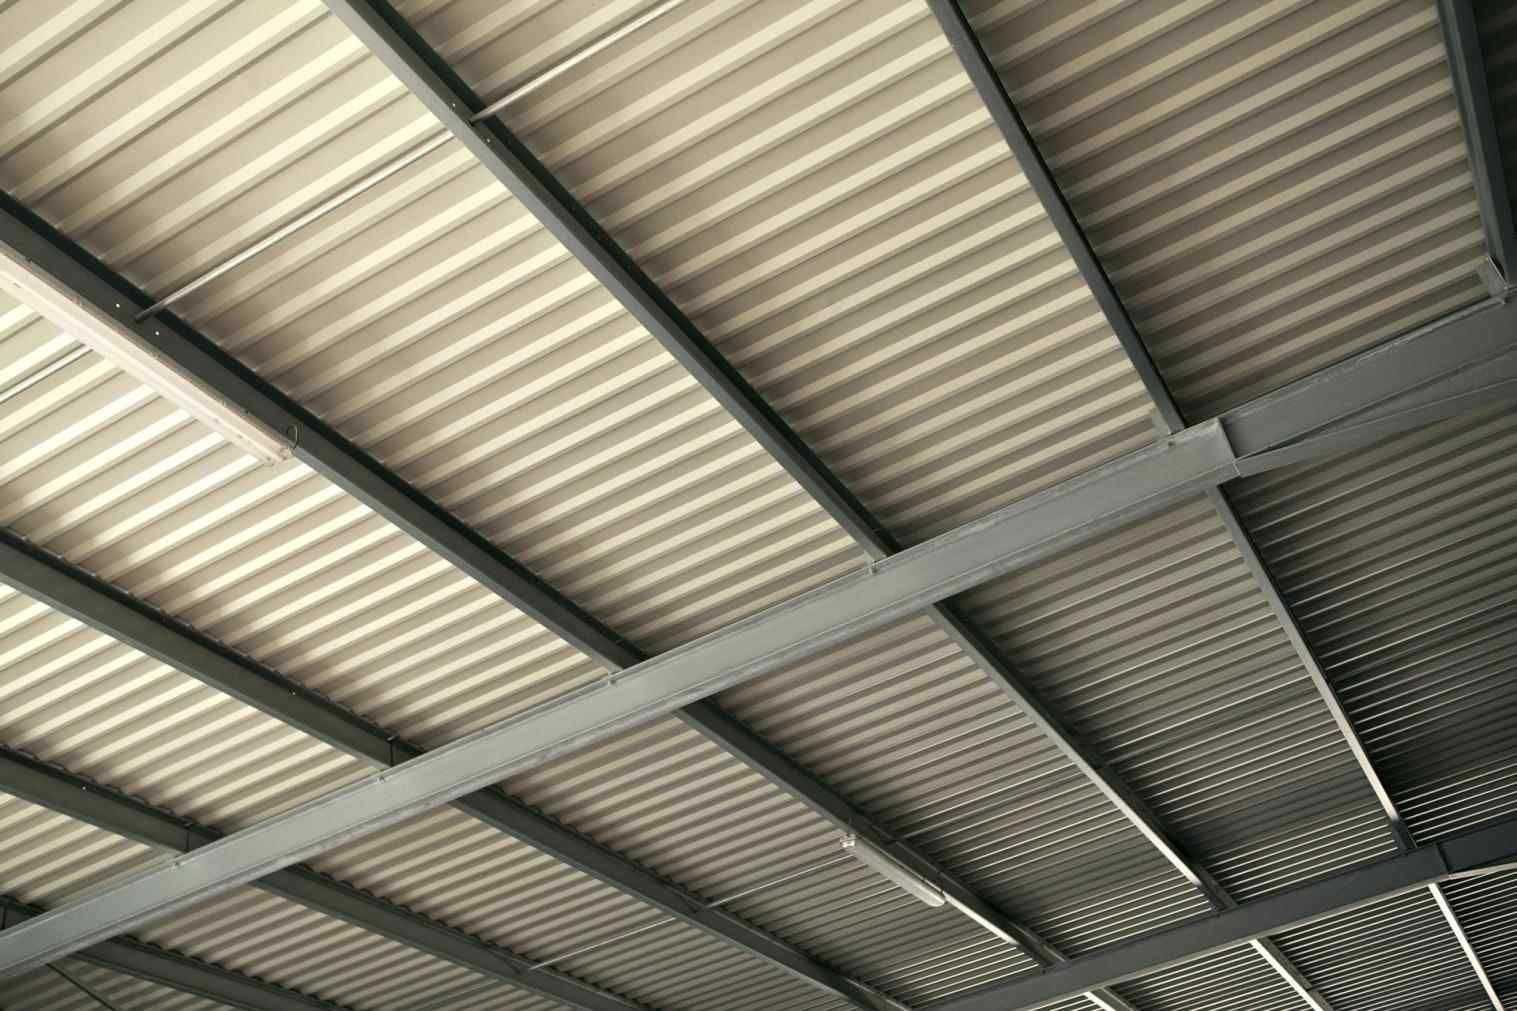 Agricultural Metal Roofing Home Roof Ideas Metal Roof Sheet Metal Roofing Roofing